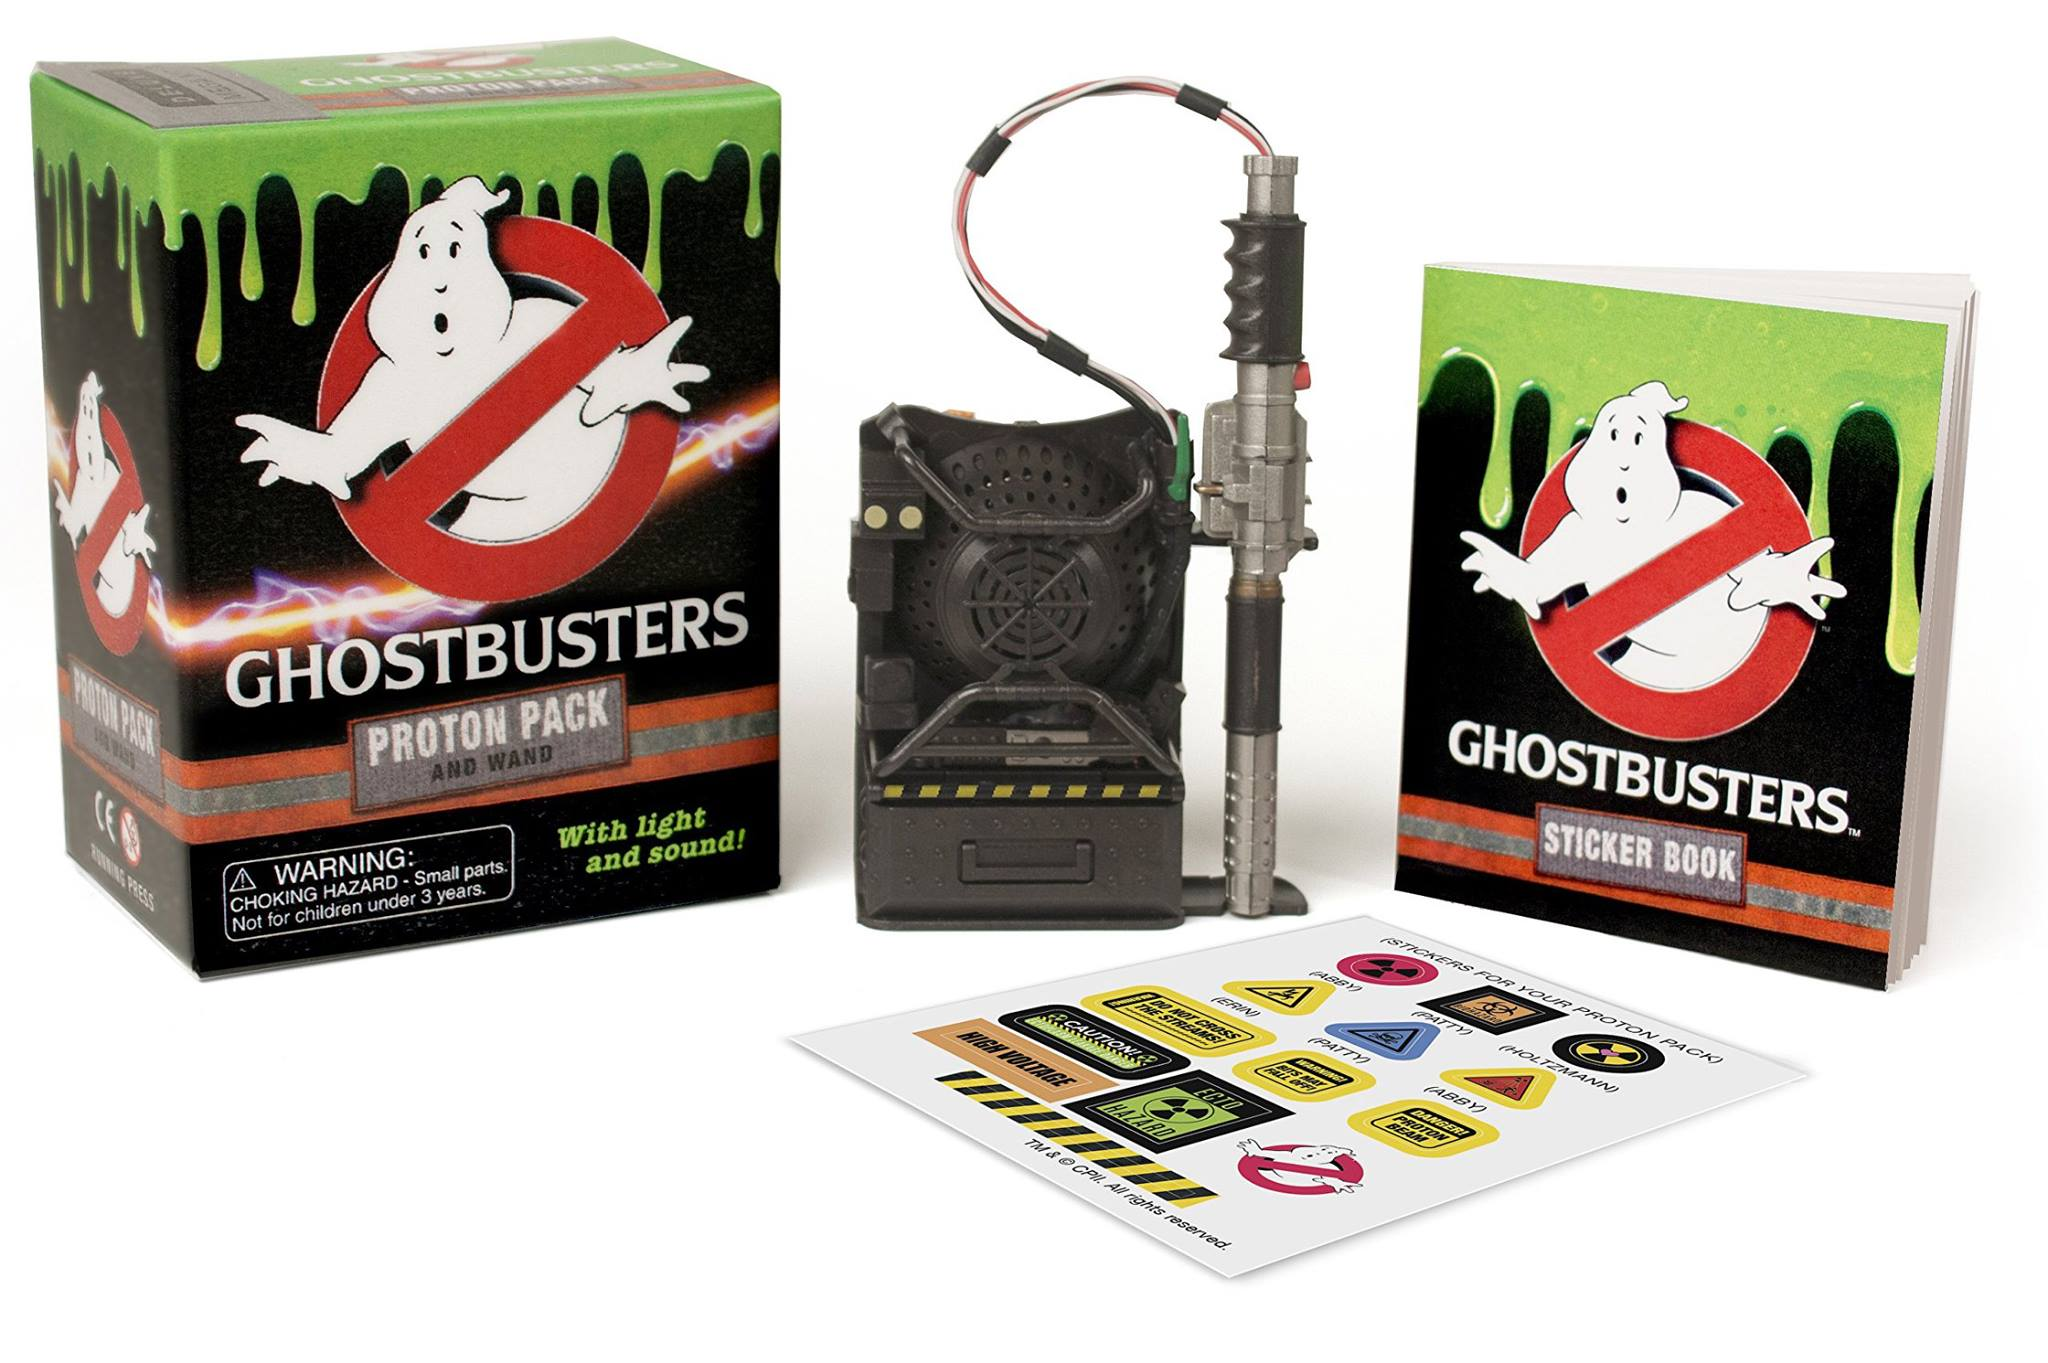 Ghostbusters 2016 Proton Pack And Wand Merchandise